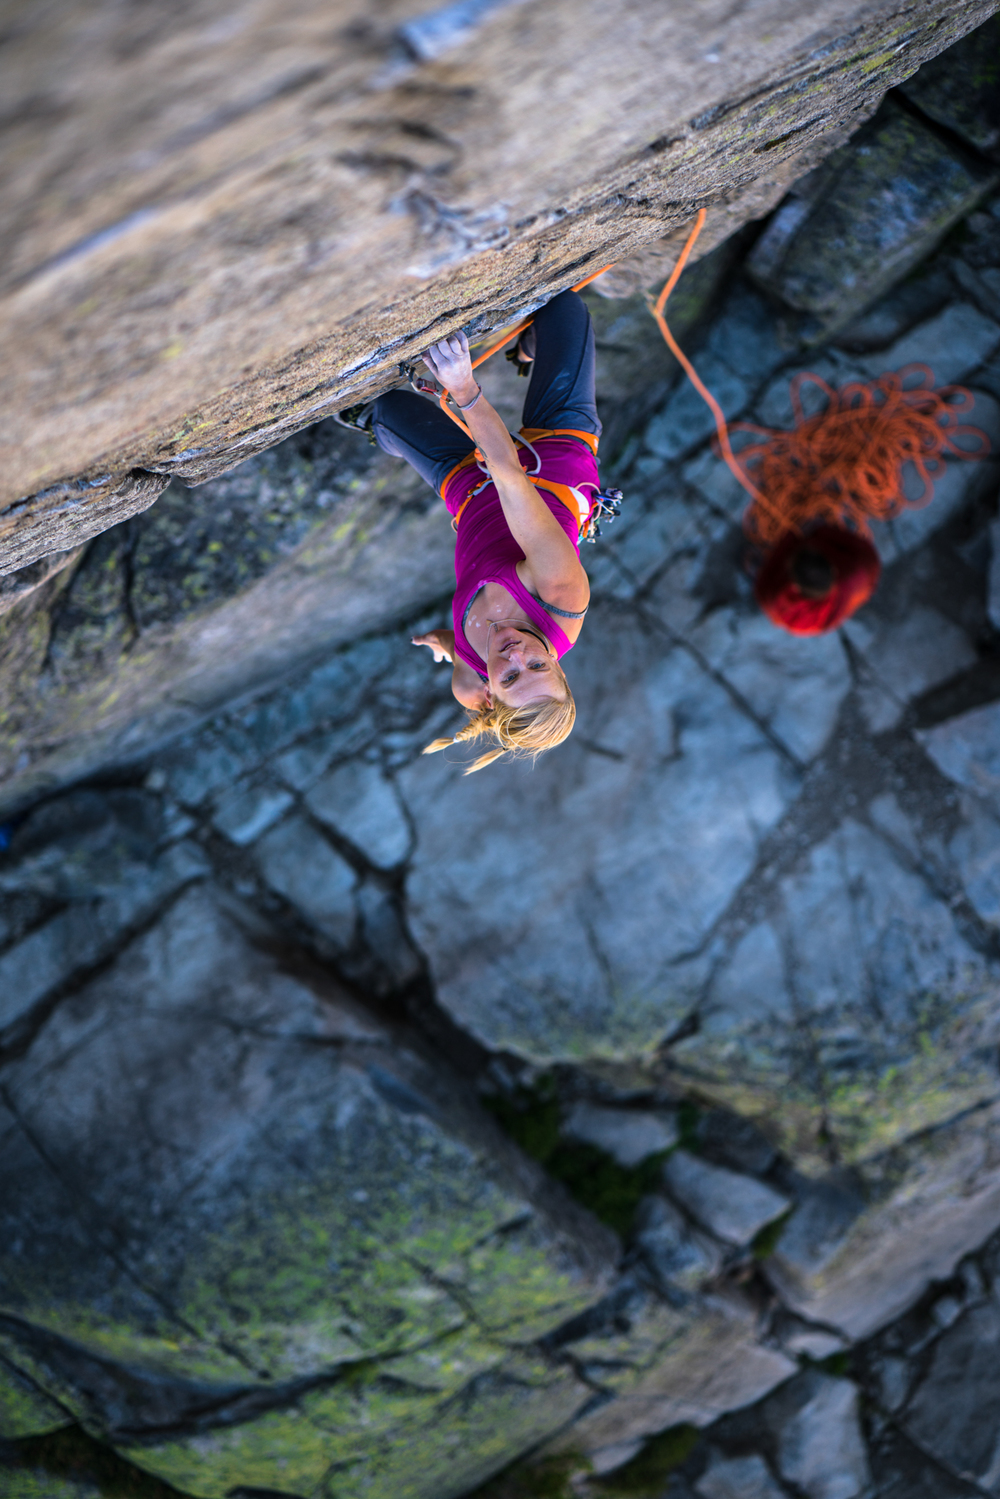 Emily Harrington in the next issue of Climbing Magazine. So make sure you pick it up in August! Read something other than your iPhone. Unless of course, you're reading this on your iPhone, in which case...carry on.